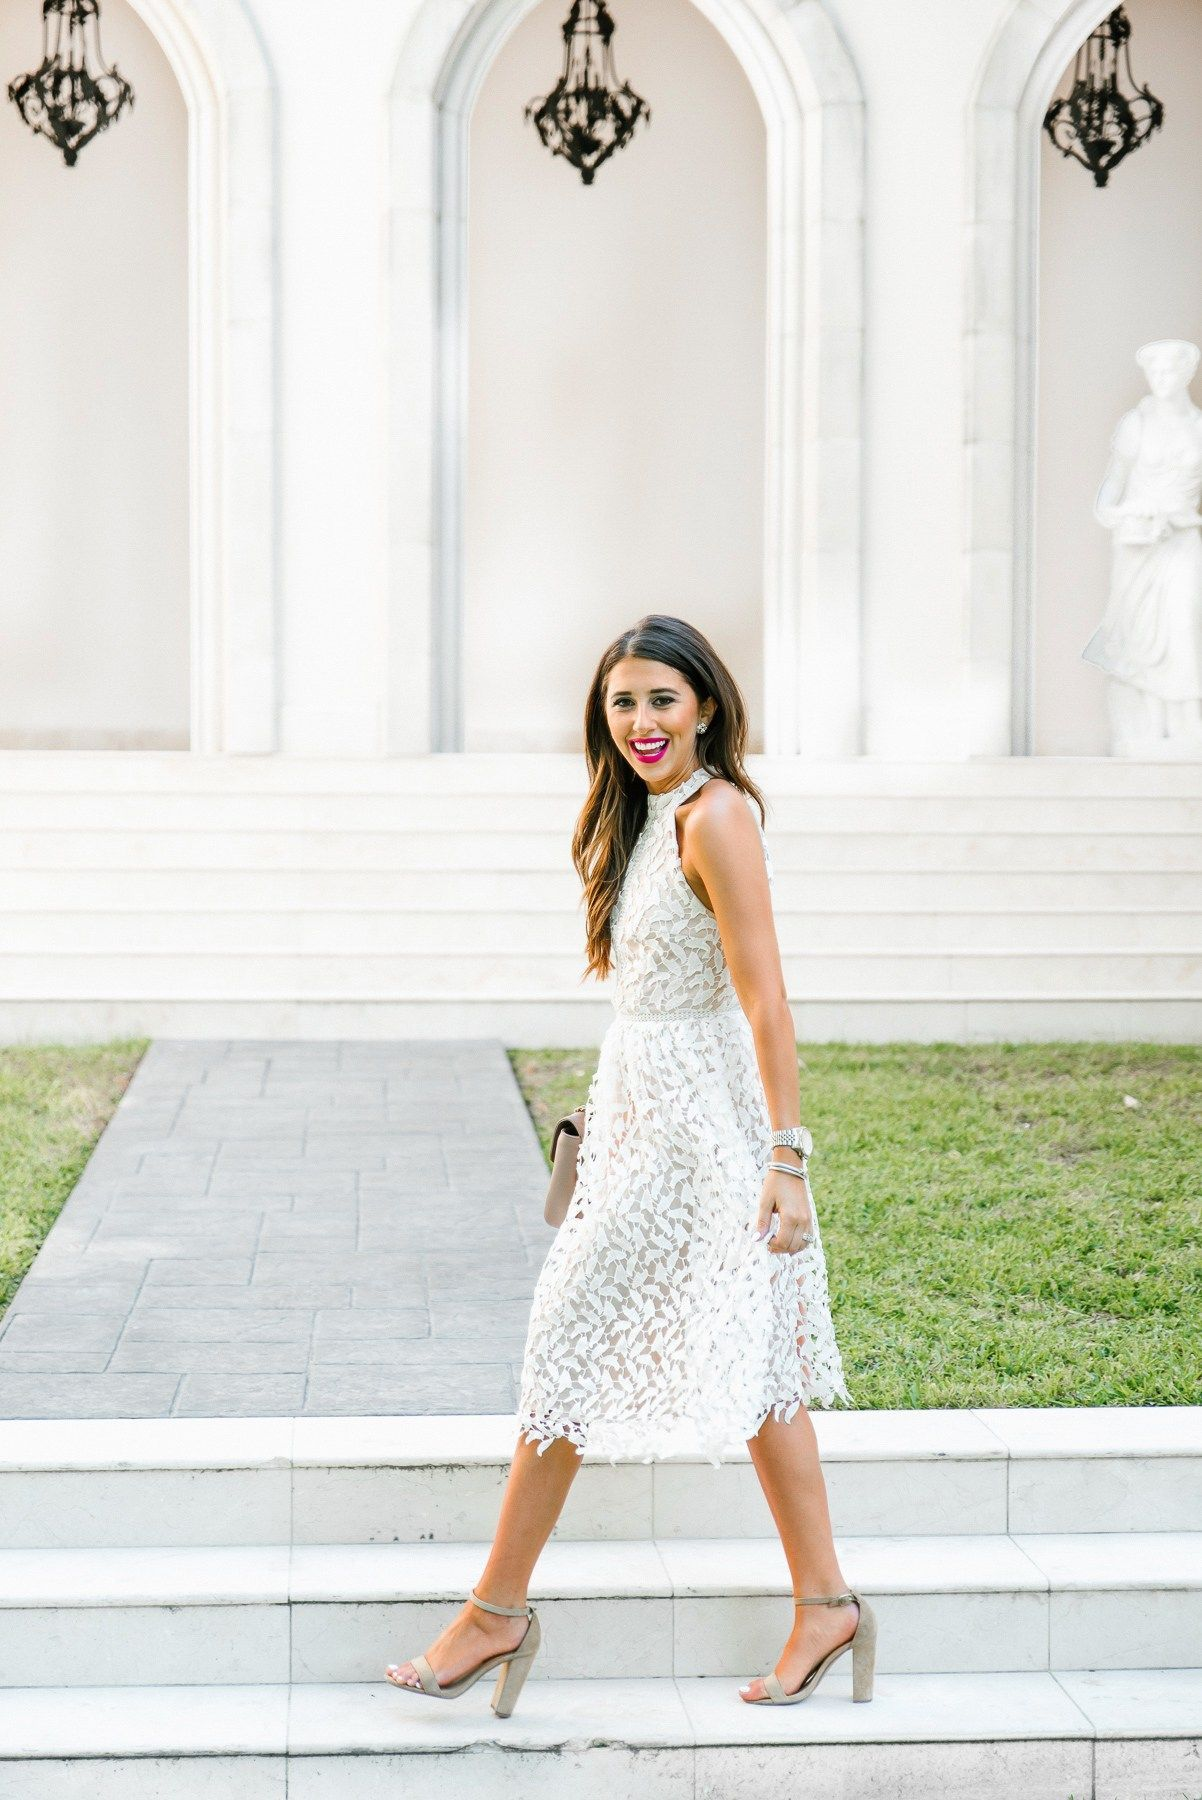 Dress Up Buttercup Houston Blogger Dede Raad For The Bride To Be Shower Dress For Bride Bridal Shower Attire Bridal Shower Dress [ 1800 x 1202 Pixel ]